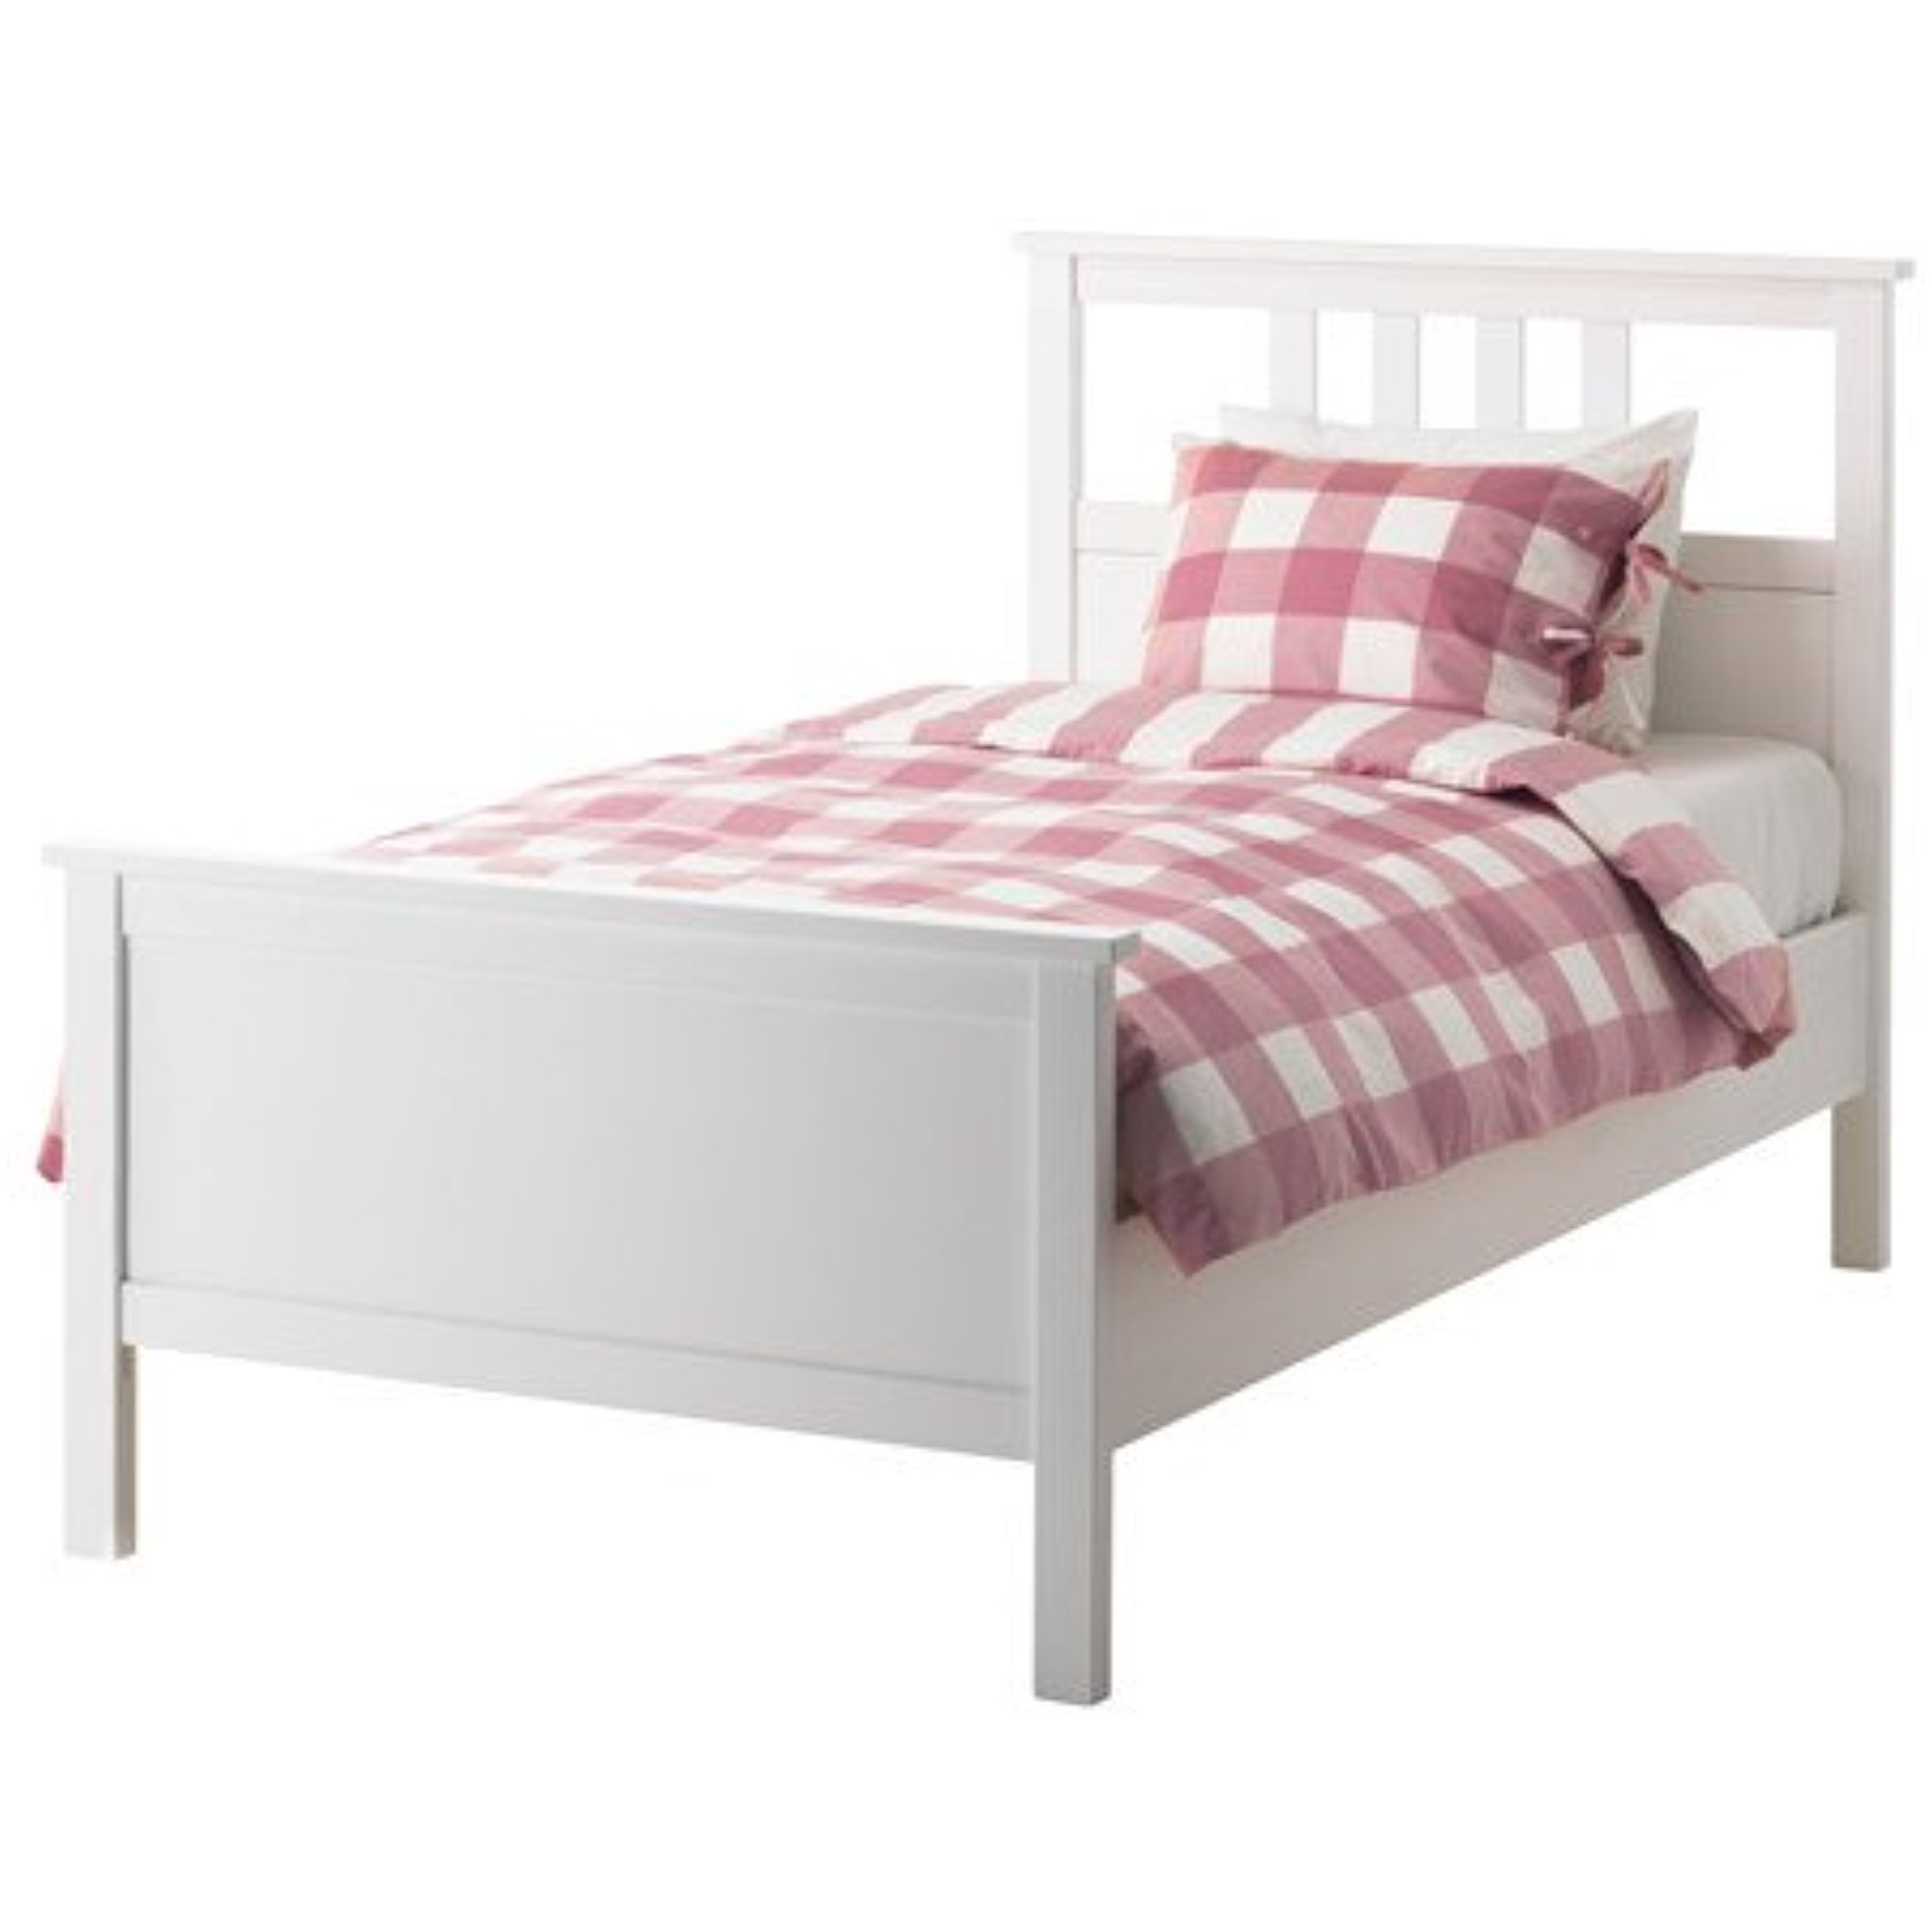 Ikea Twin Size Bed Ikea Twin Size Bed Frame White Stain 18210 142917 142